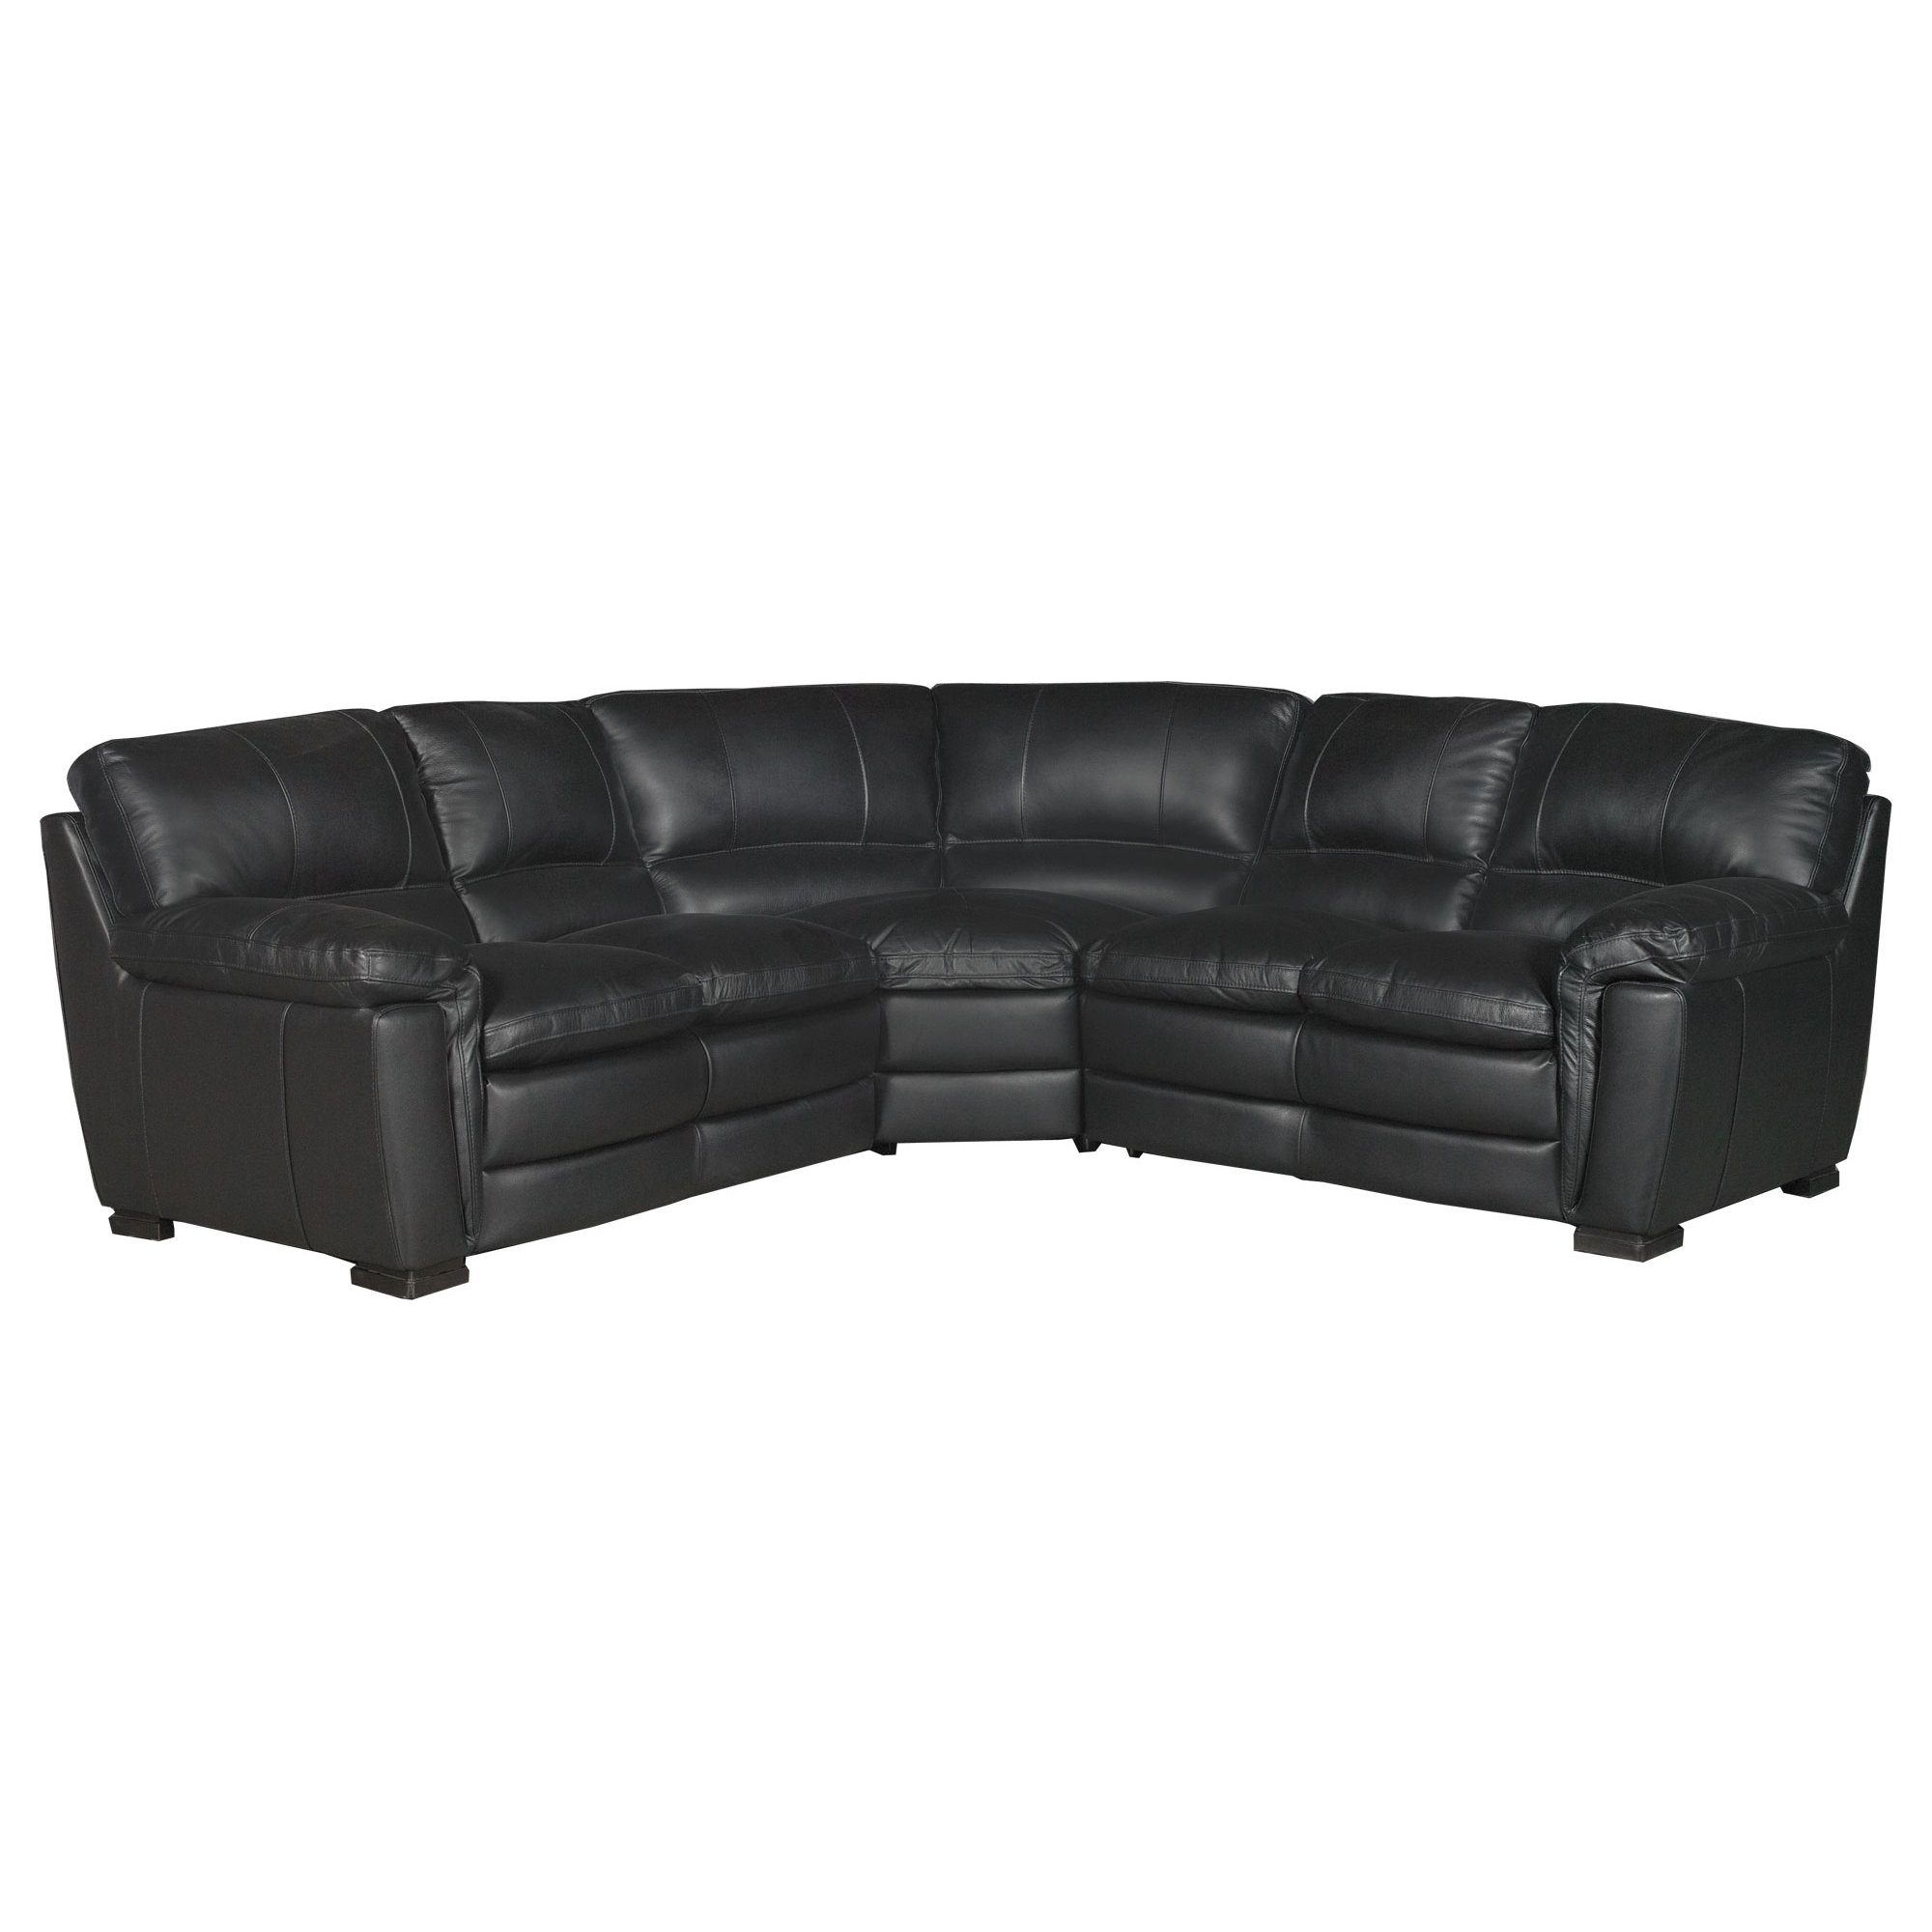 Contemporary Black Leather 3 Piece Sectional Sofa Tanner